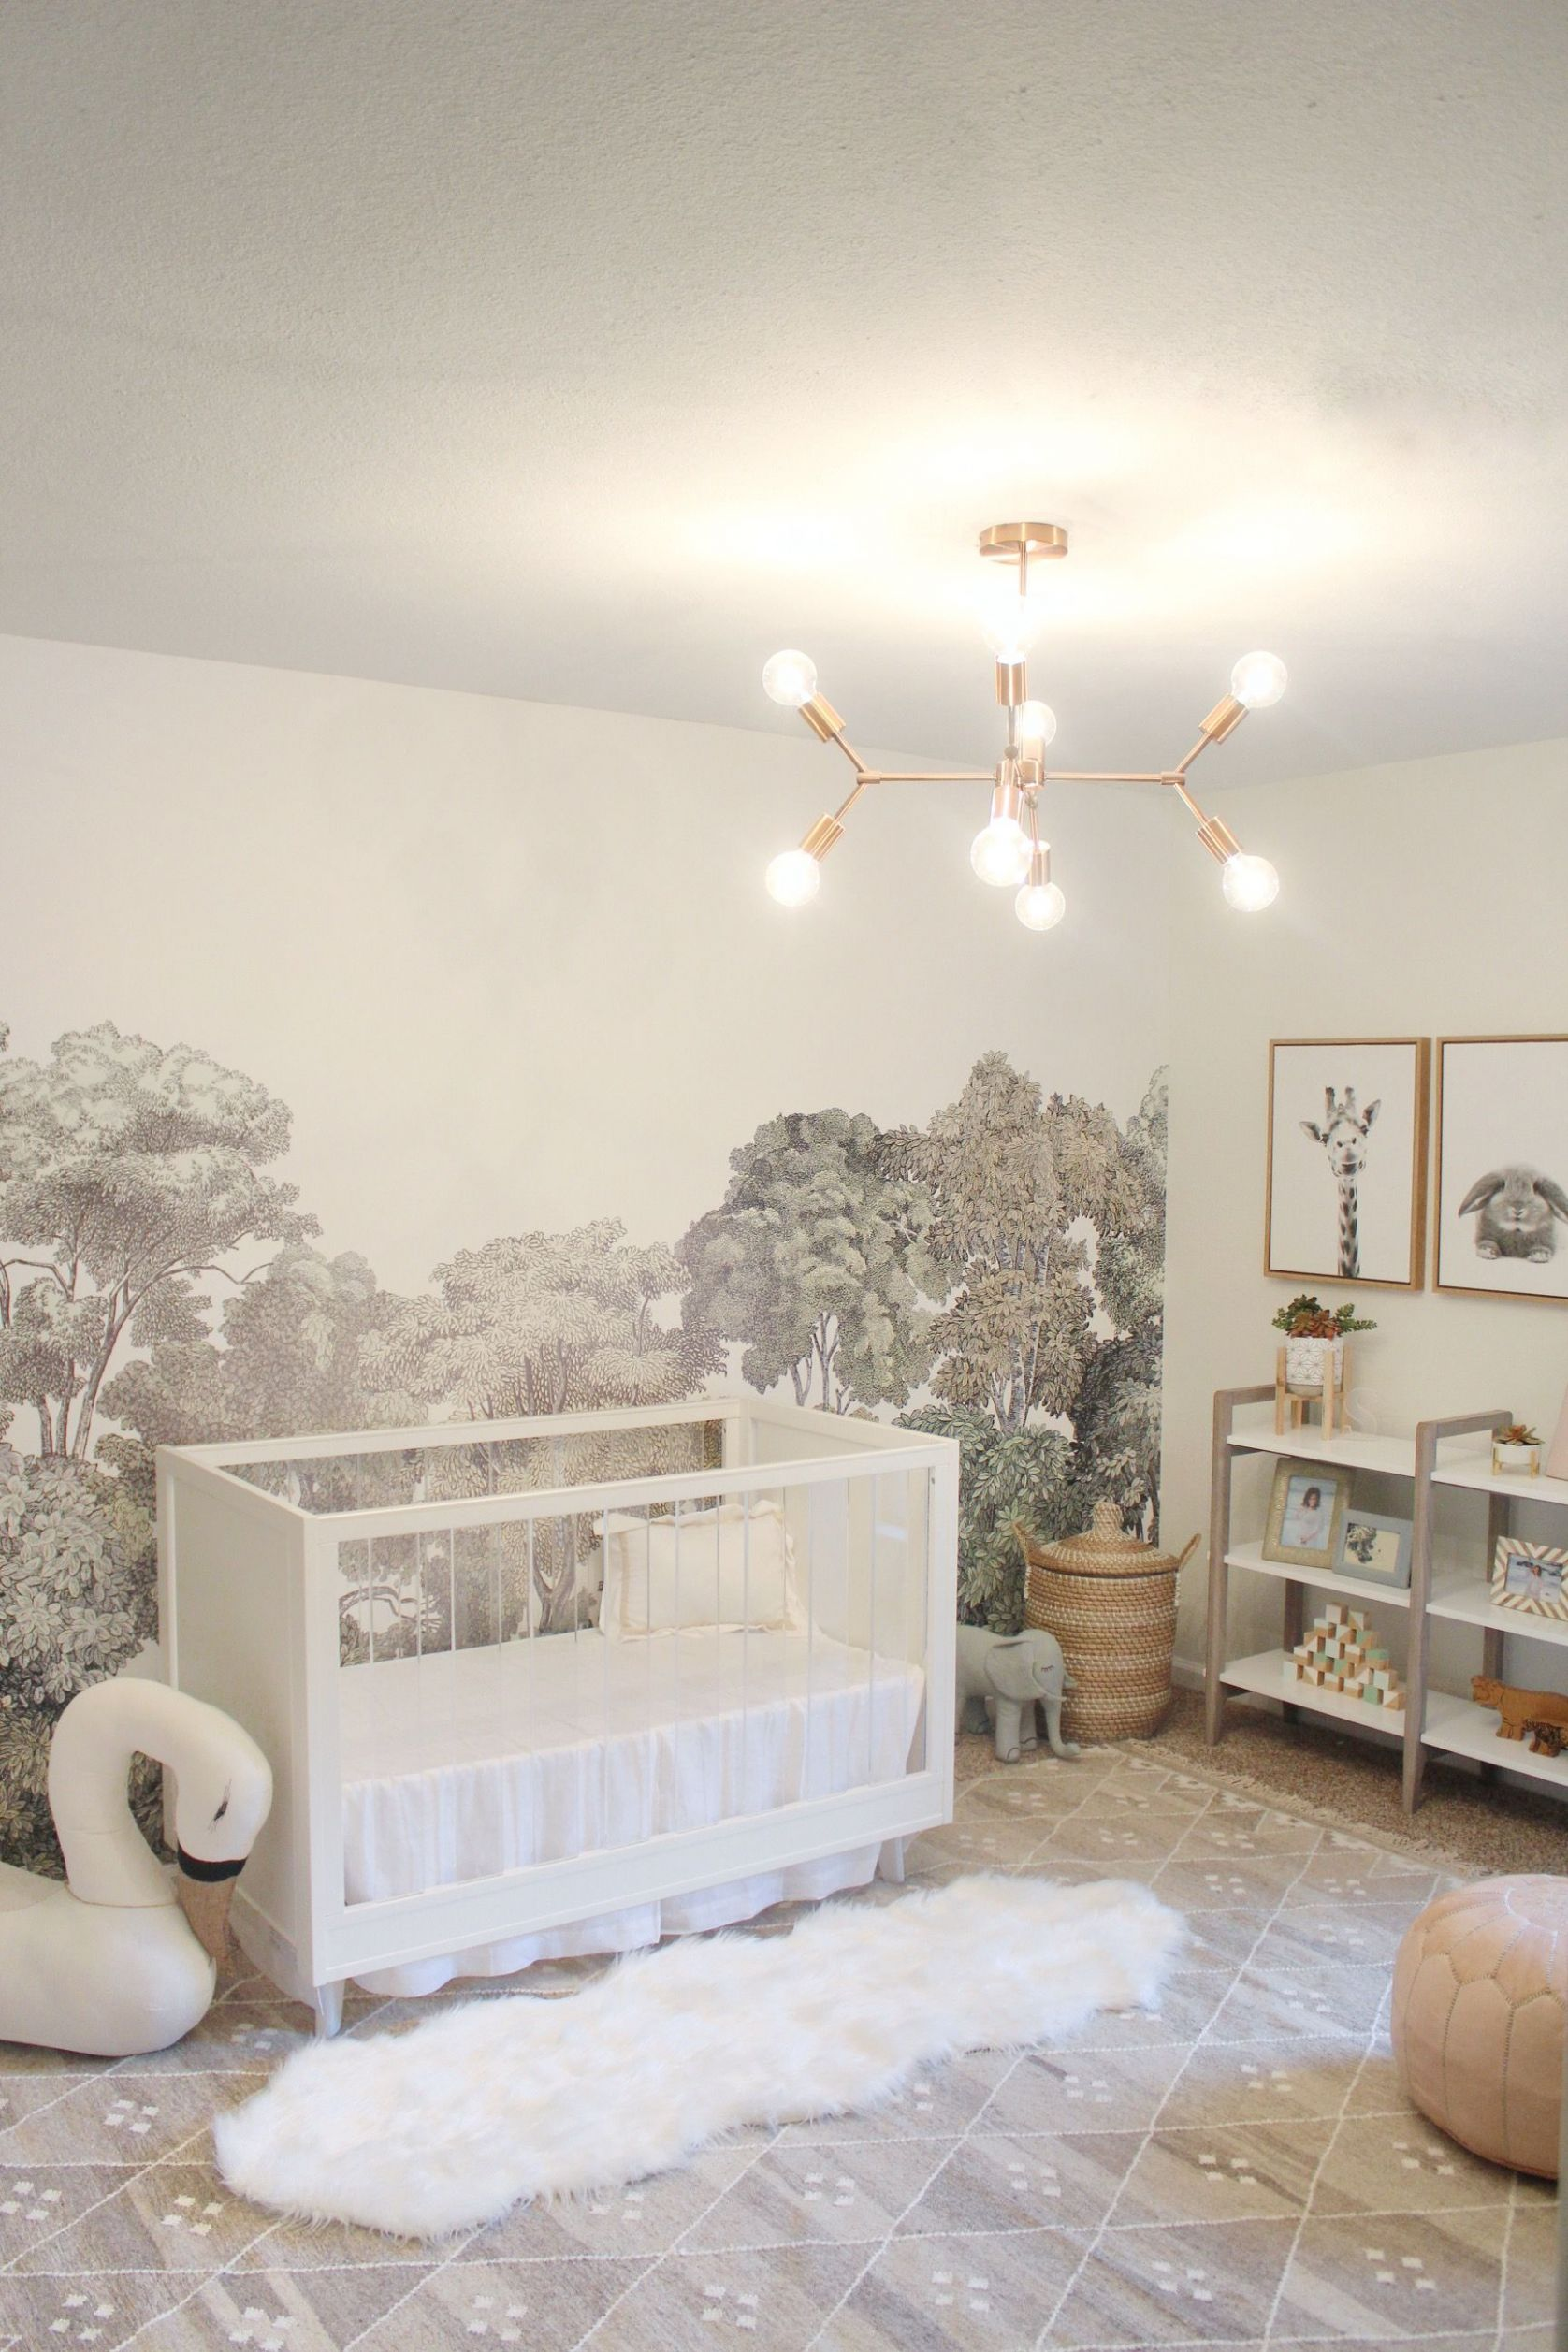 Bellewood | Nursery wall murals, Baby room decor, Nursery inspiration